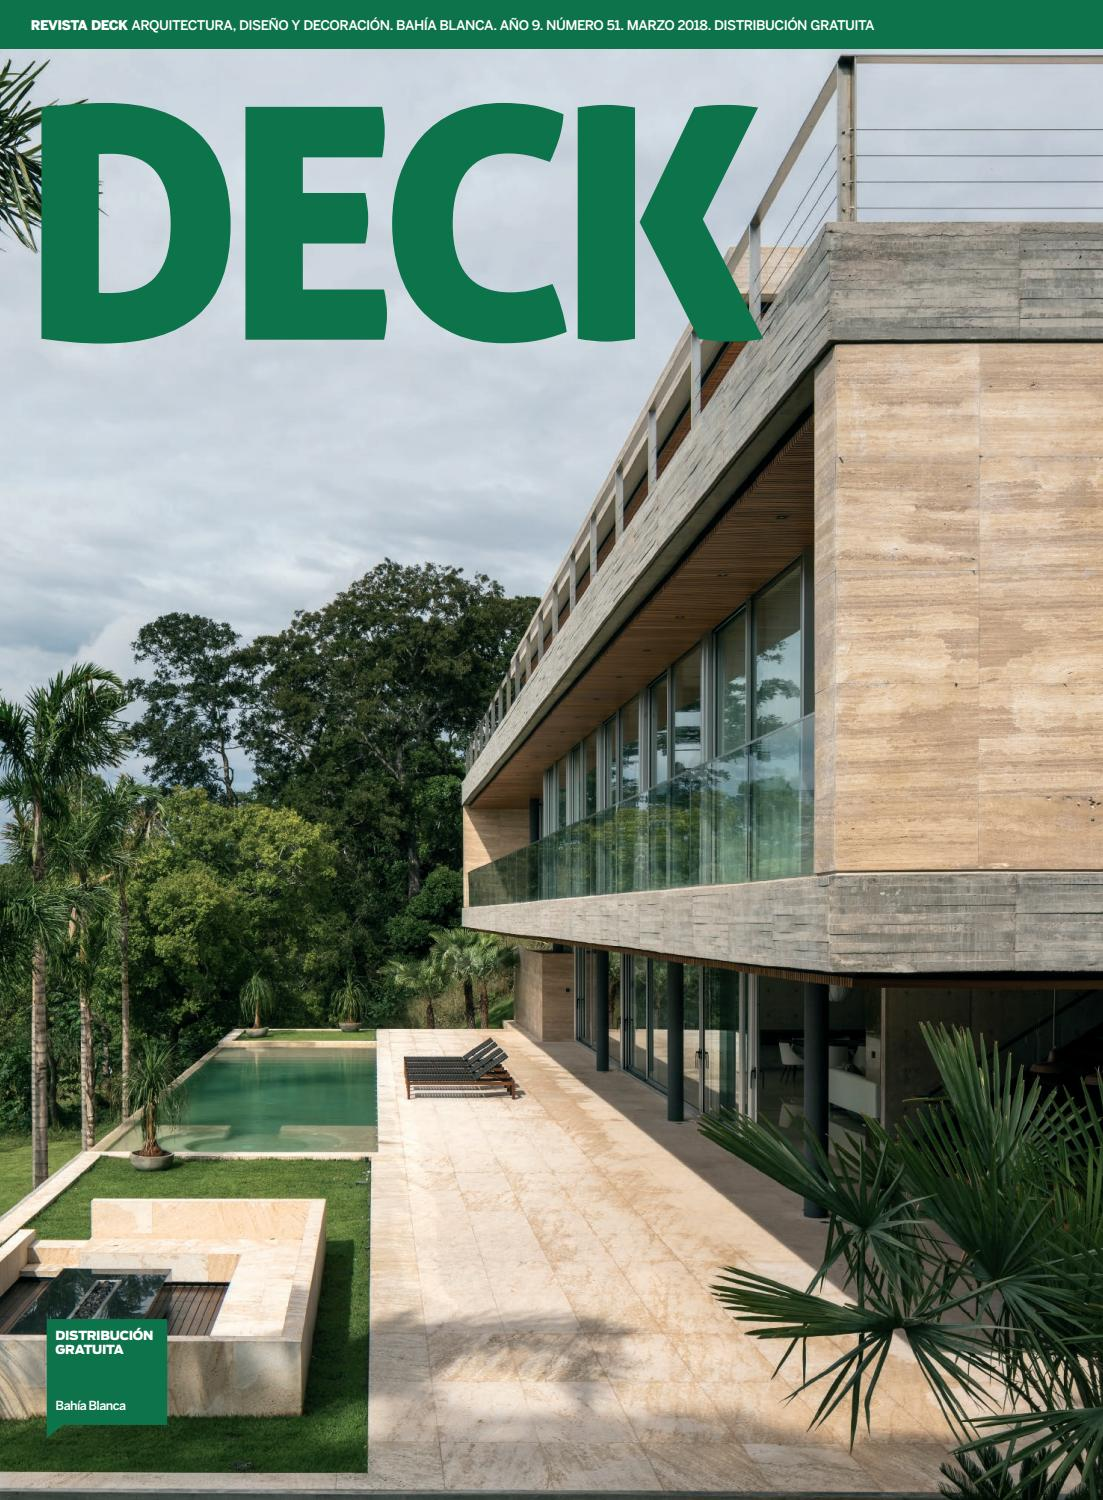 Revista DECK | Marzo 2018 by REVISTA DECK - issuu